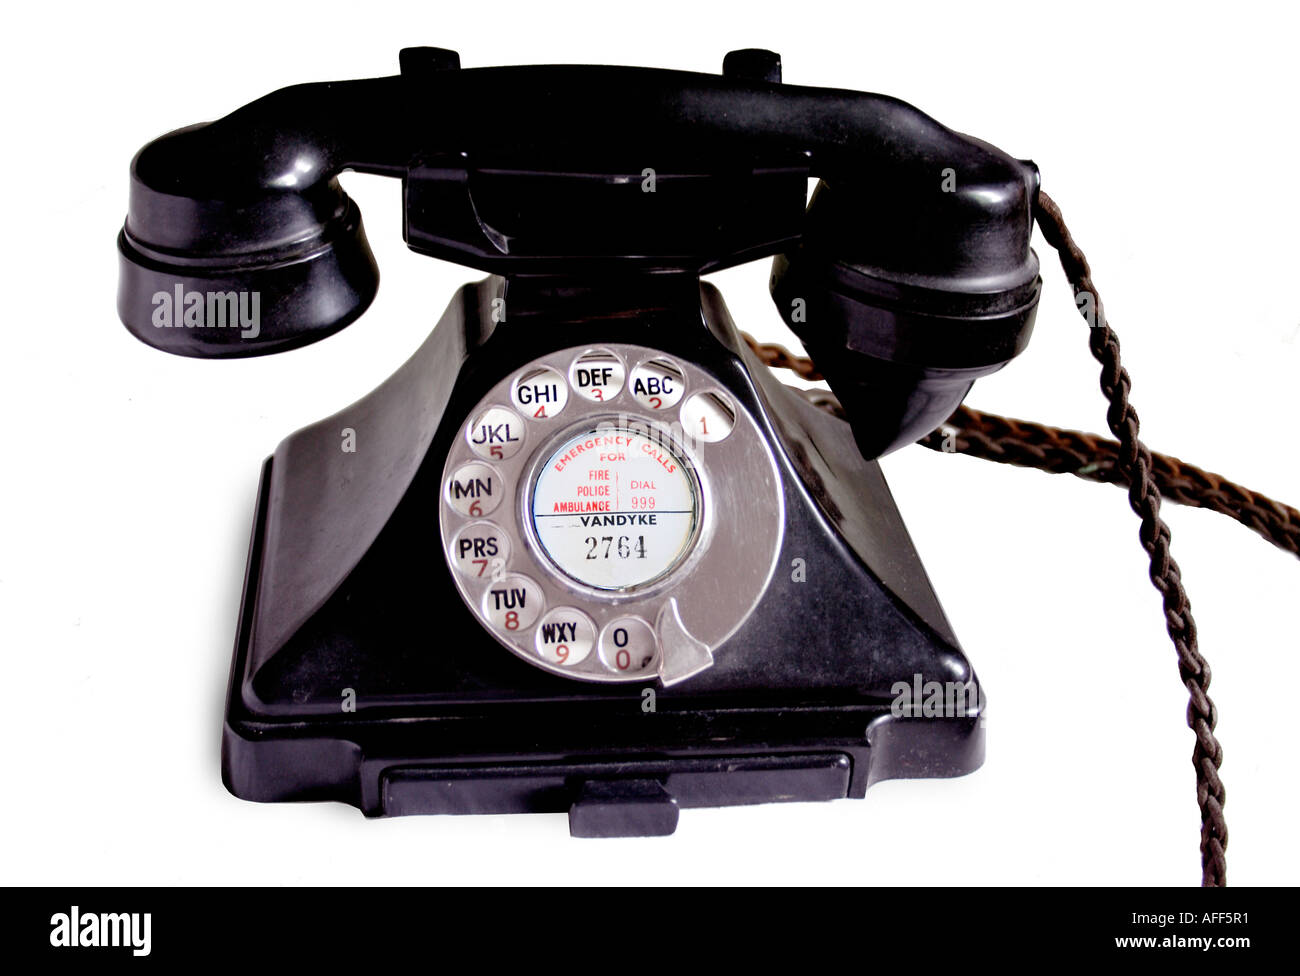 Old Phone - Stock Image